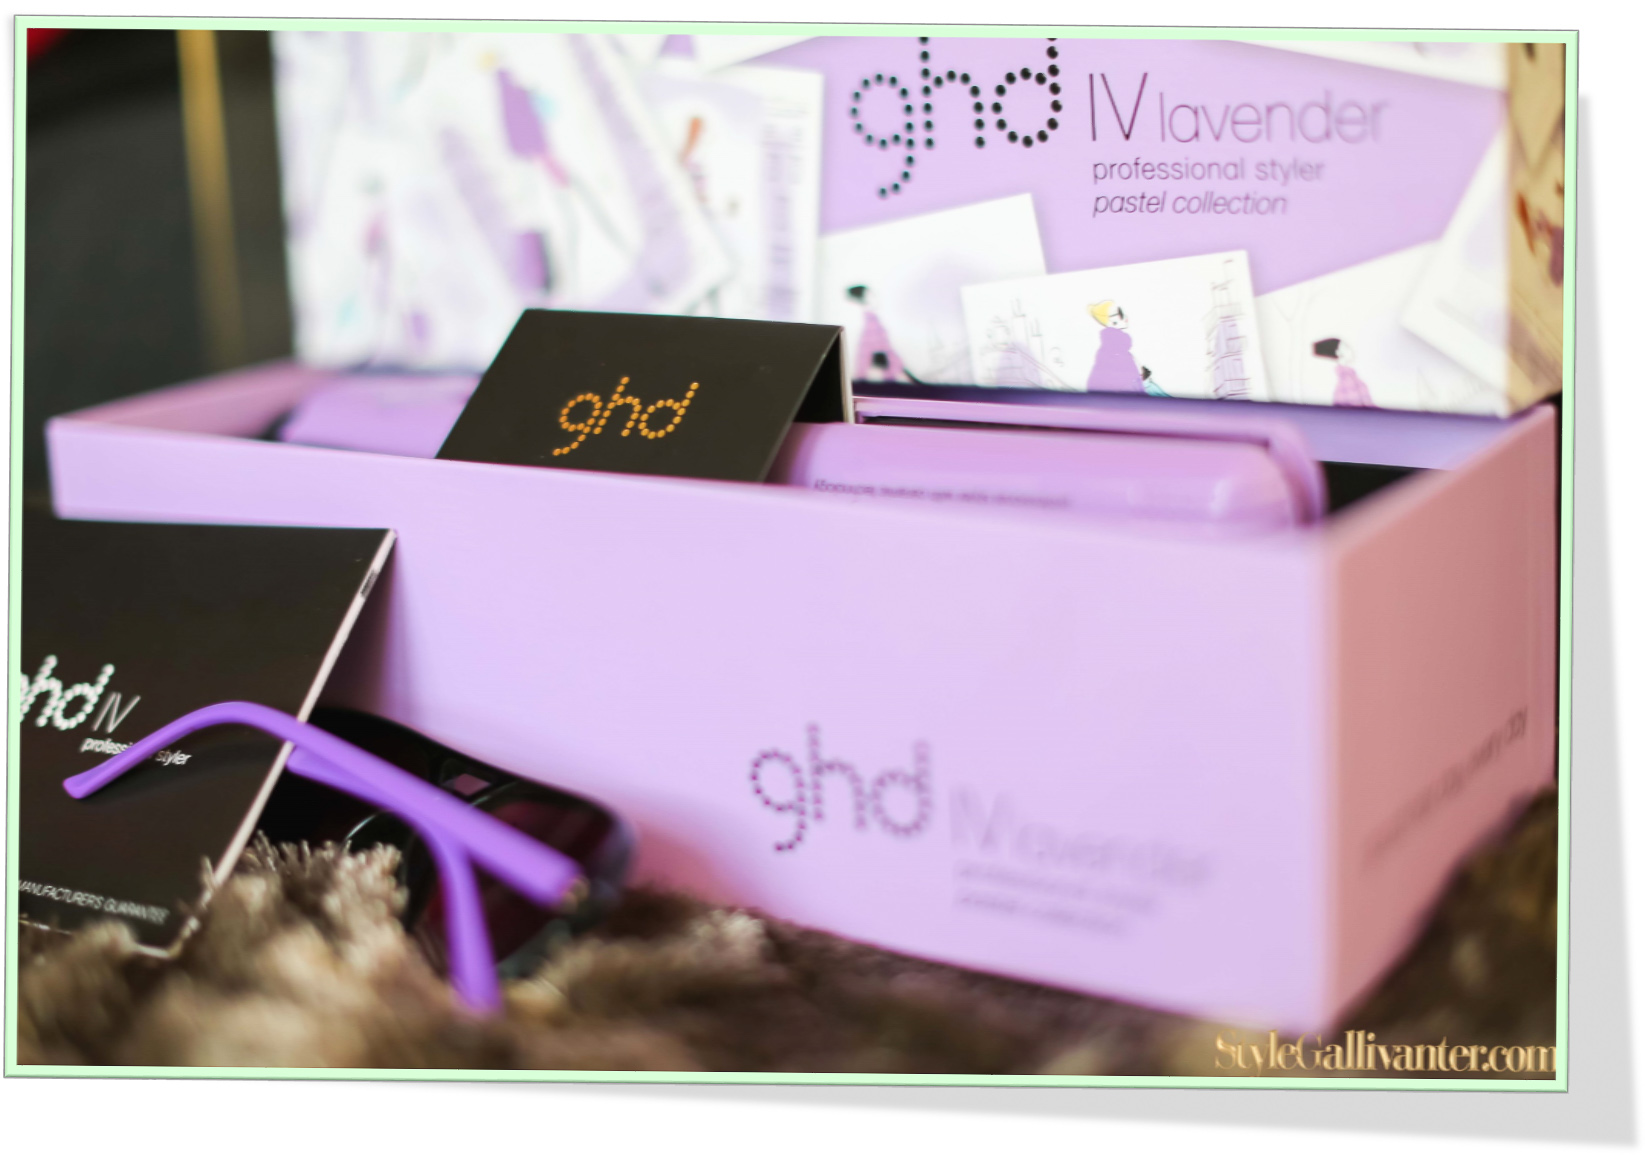 limited-edition-ghd-lavender-professional-styler_ghd-bloggers_melbournes-best-hair-bloggers_australias-best-natural-hair-bloggers_latest-ghd-range_ghd-pastel-collection_ghd-IV-lavender-professional-styler_ghd-pastel-collection-5